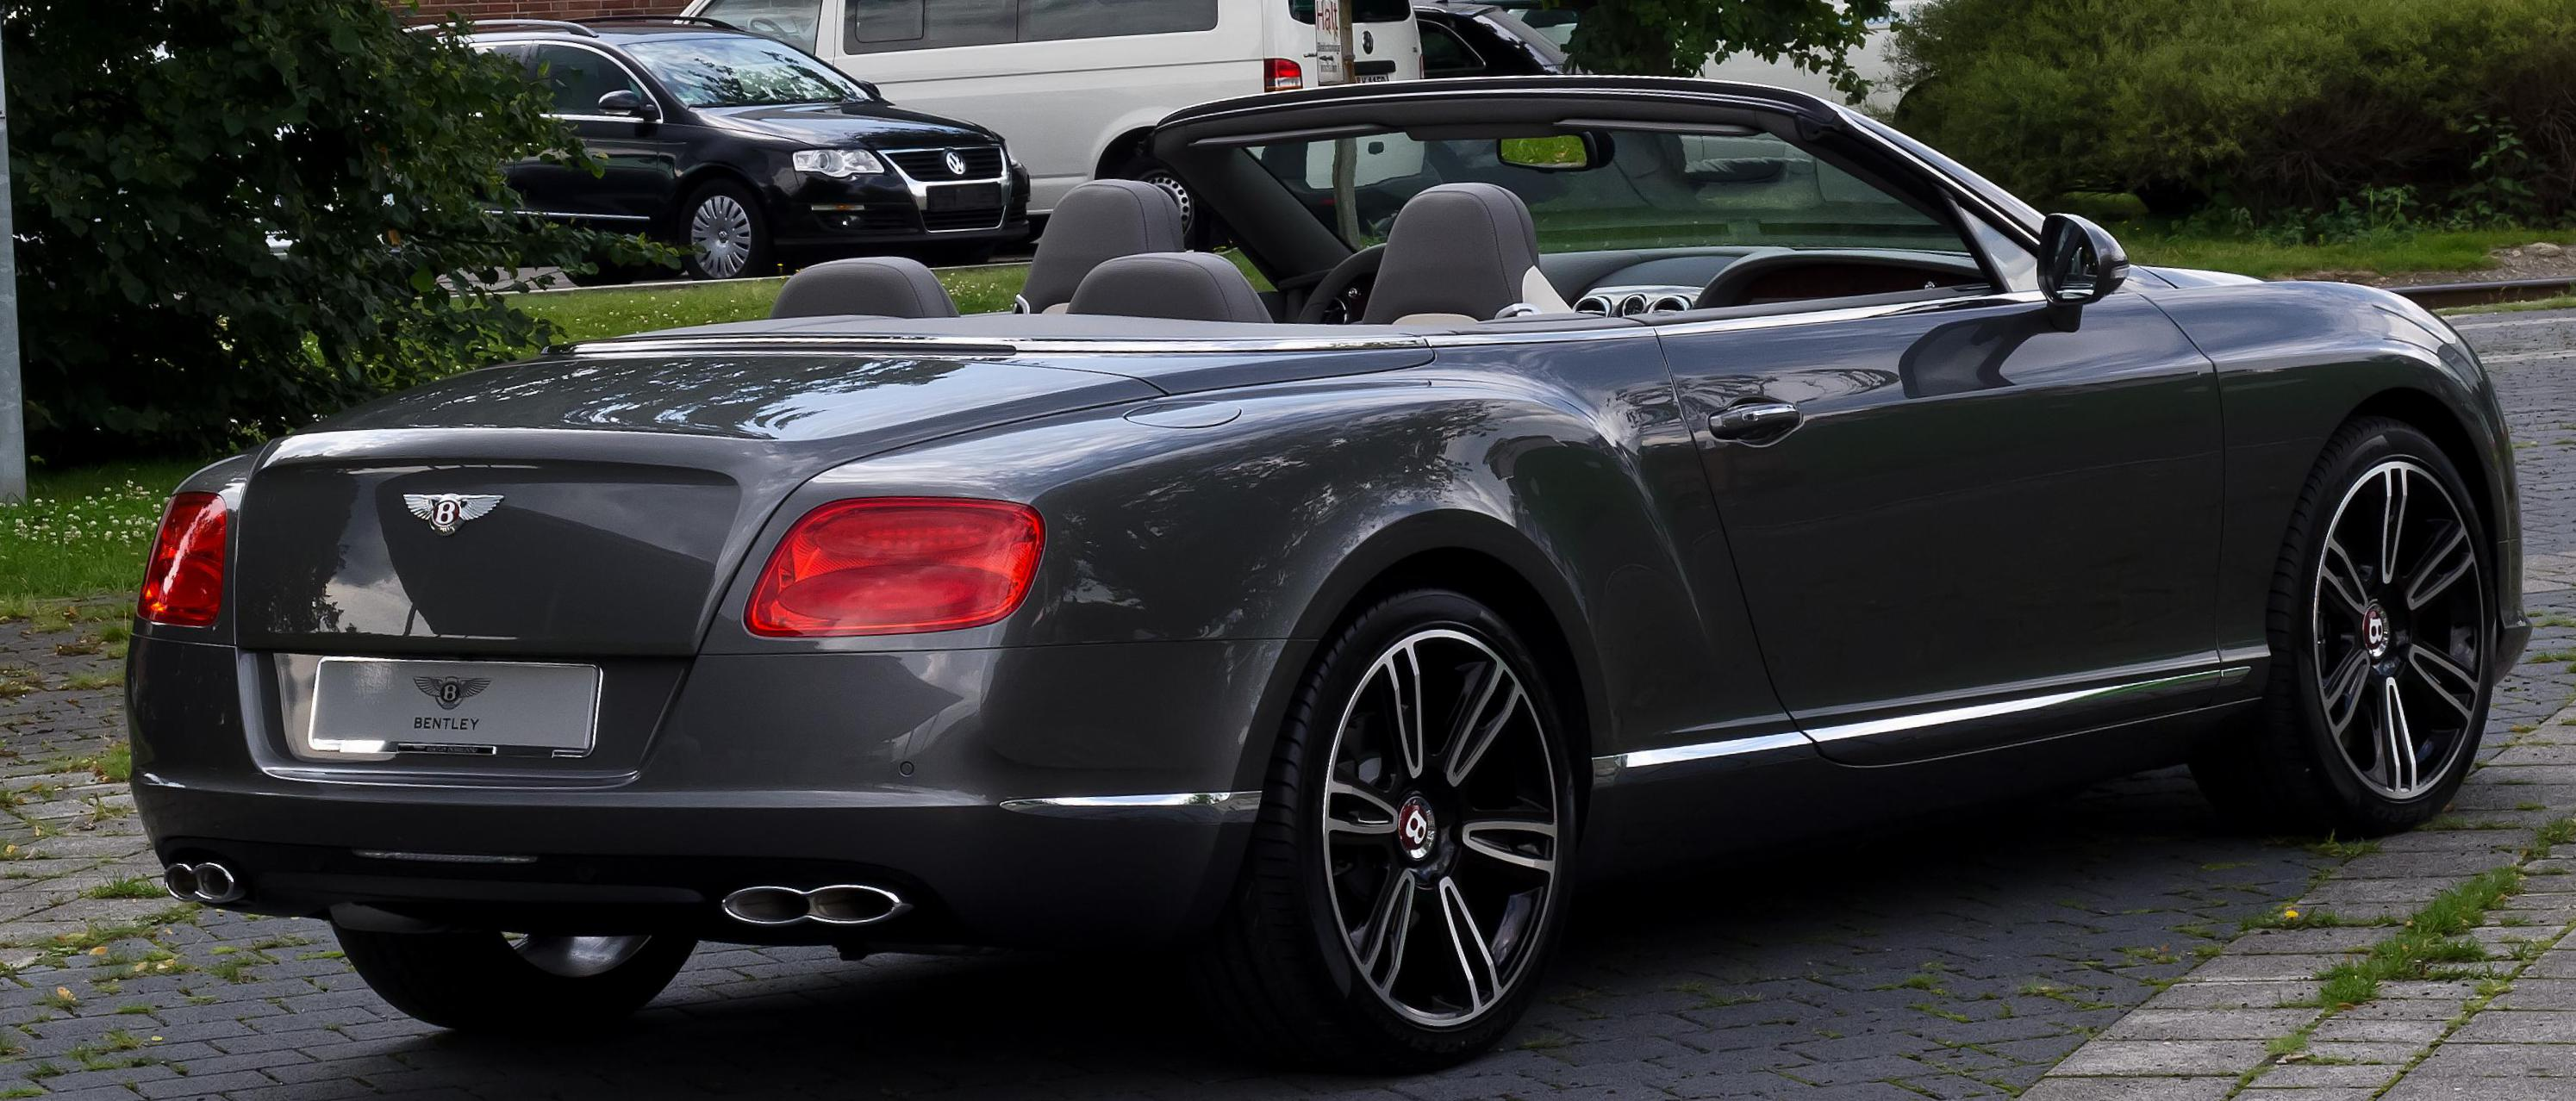 Continental GTC V8 Bentley for sale 2008